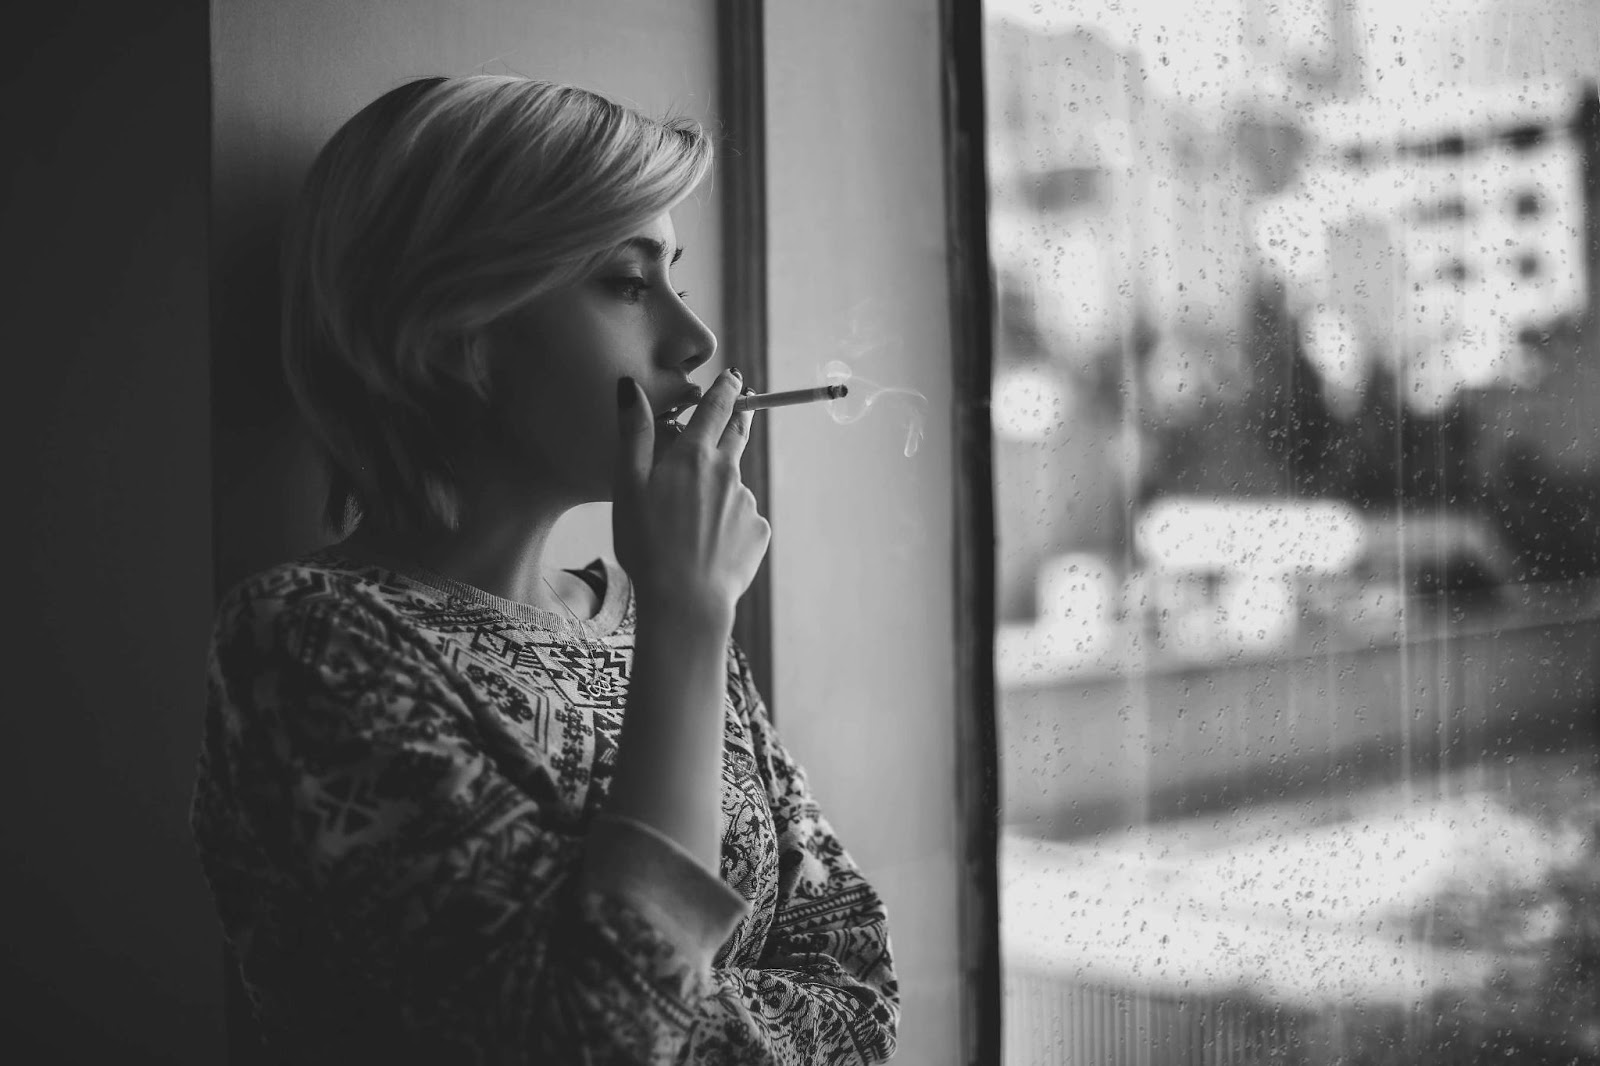 black and white photo of a blonde woman staring out the window at a rainy city as she smokes a cigarette